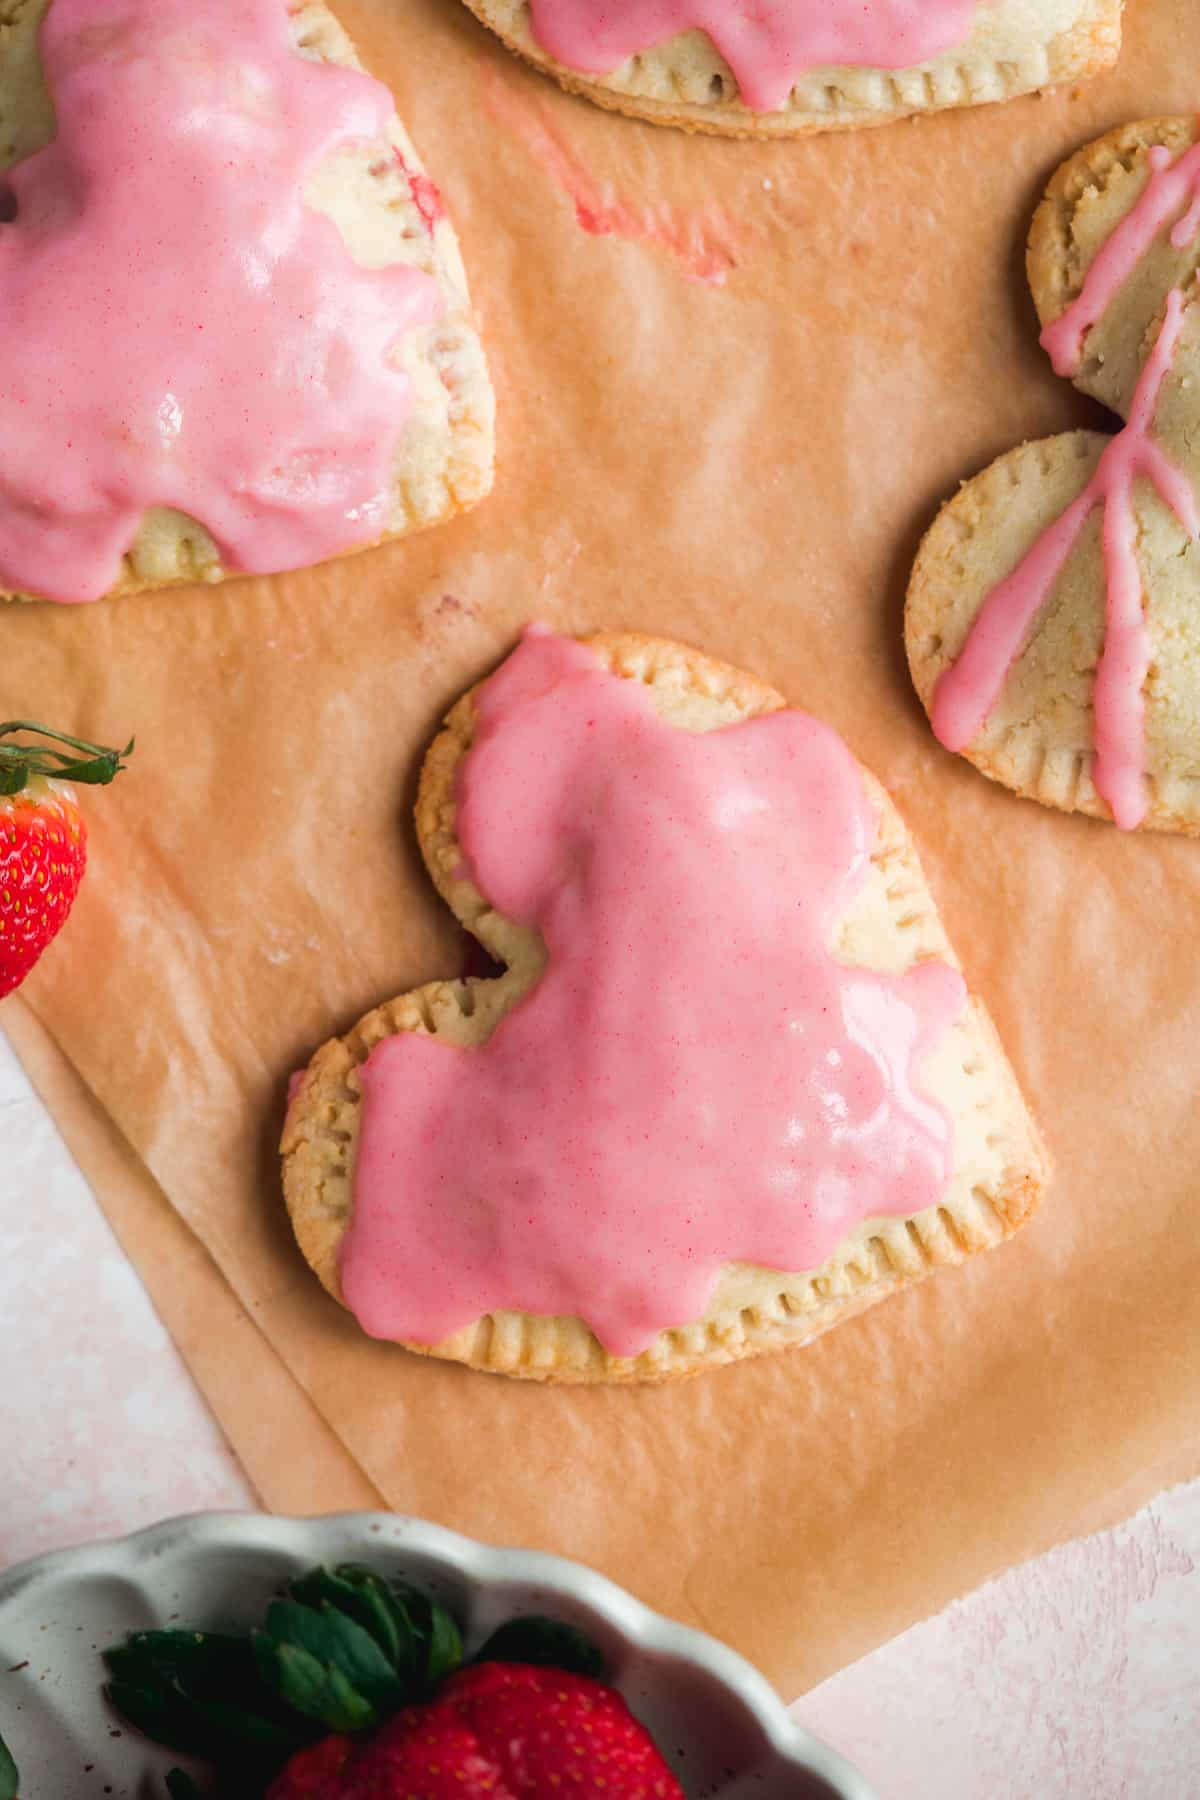 Heart shaped pop tarts on brown parchment paper with pink icing and strawberries in the corner.